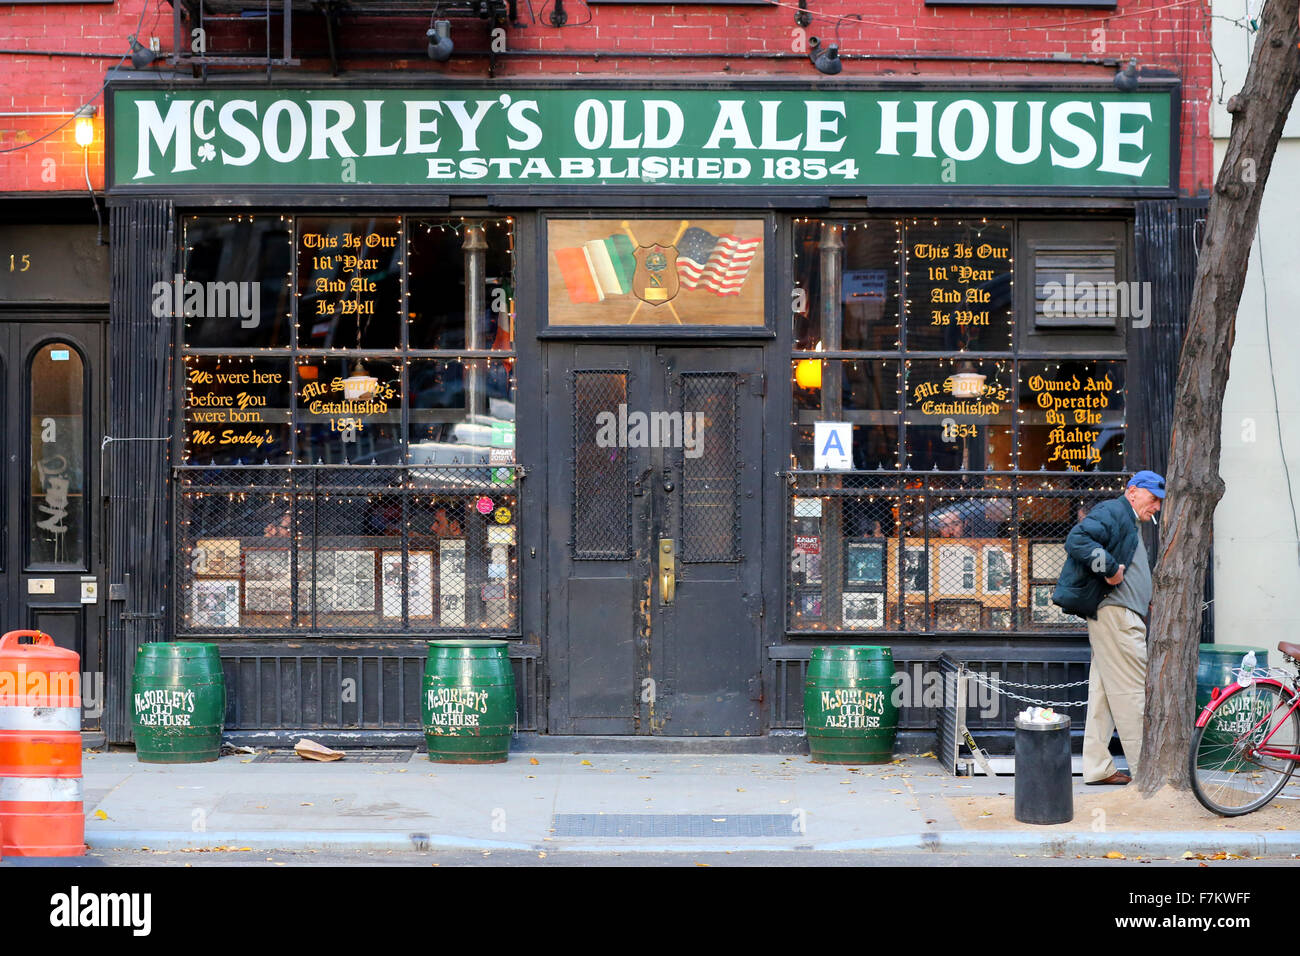 McSorley's Old Ale House, 15 East 7th St, NYC - Stock Image